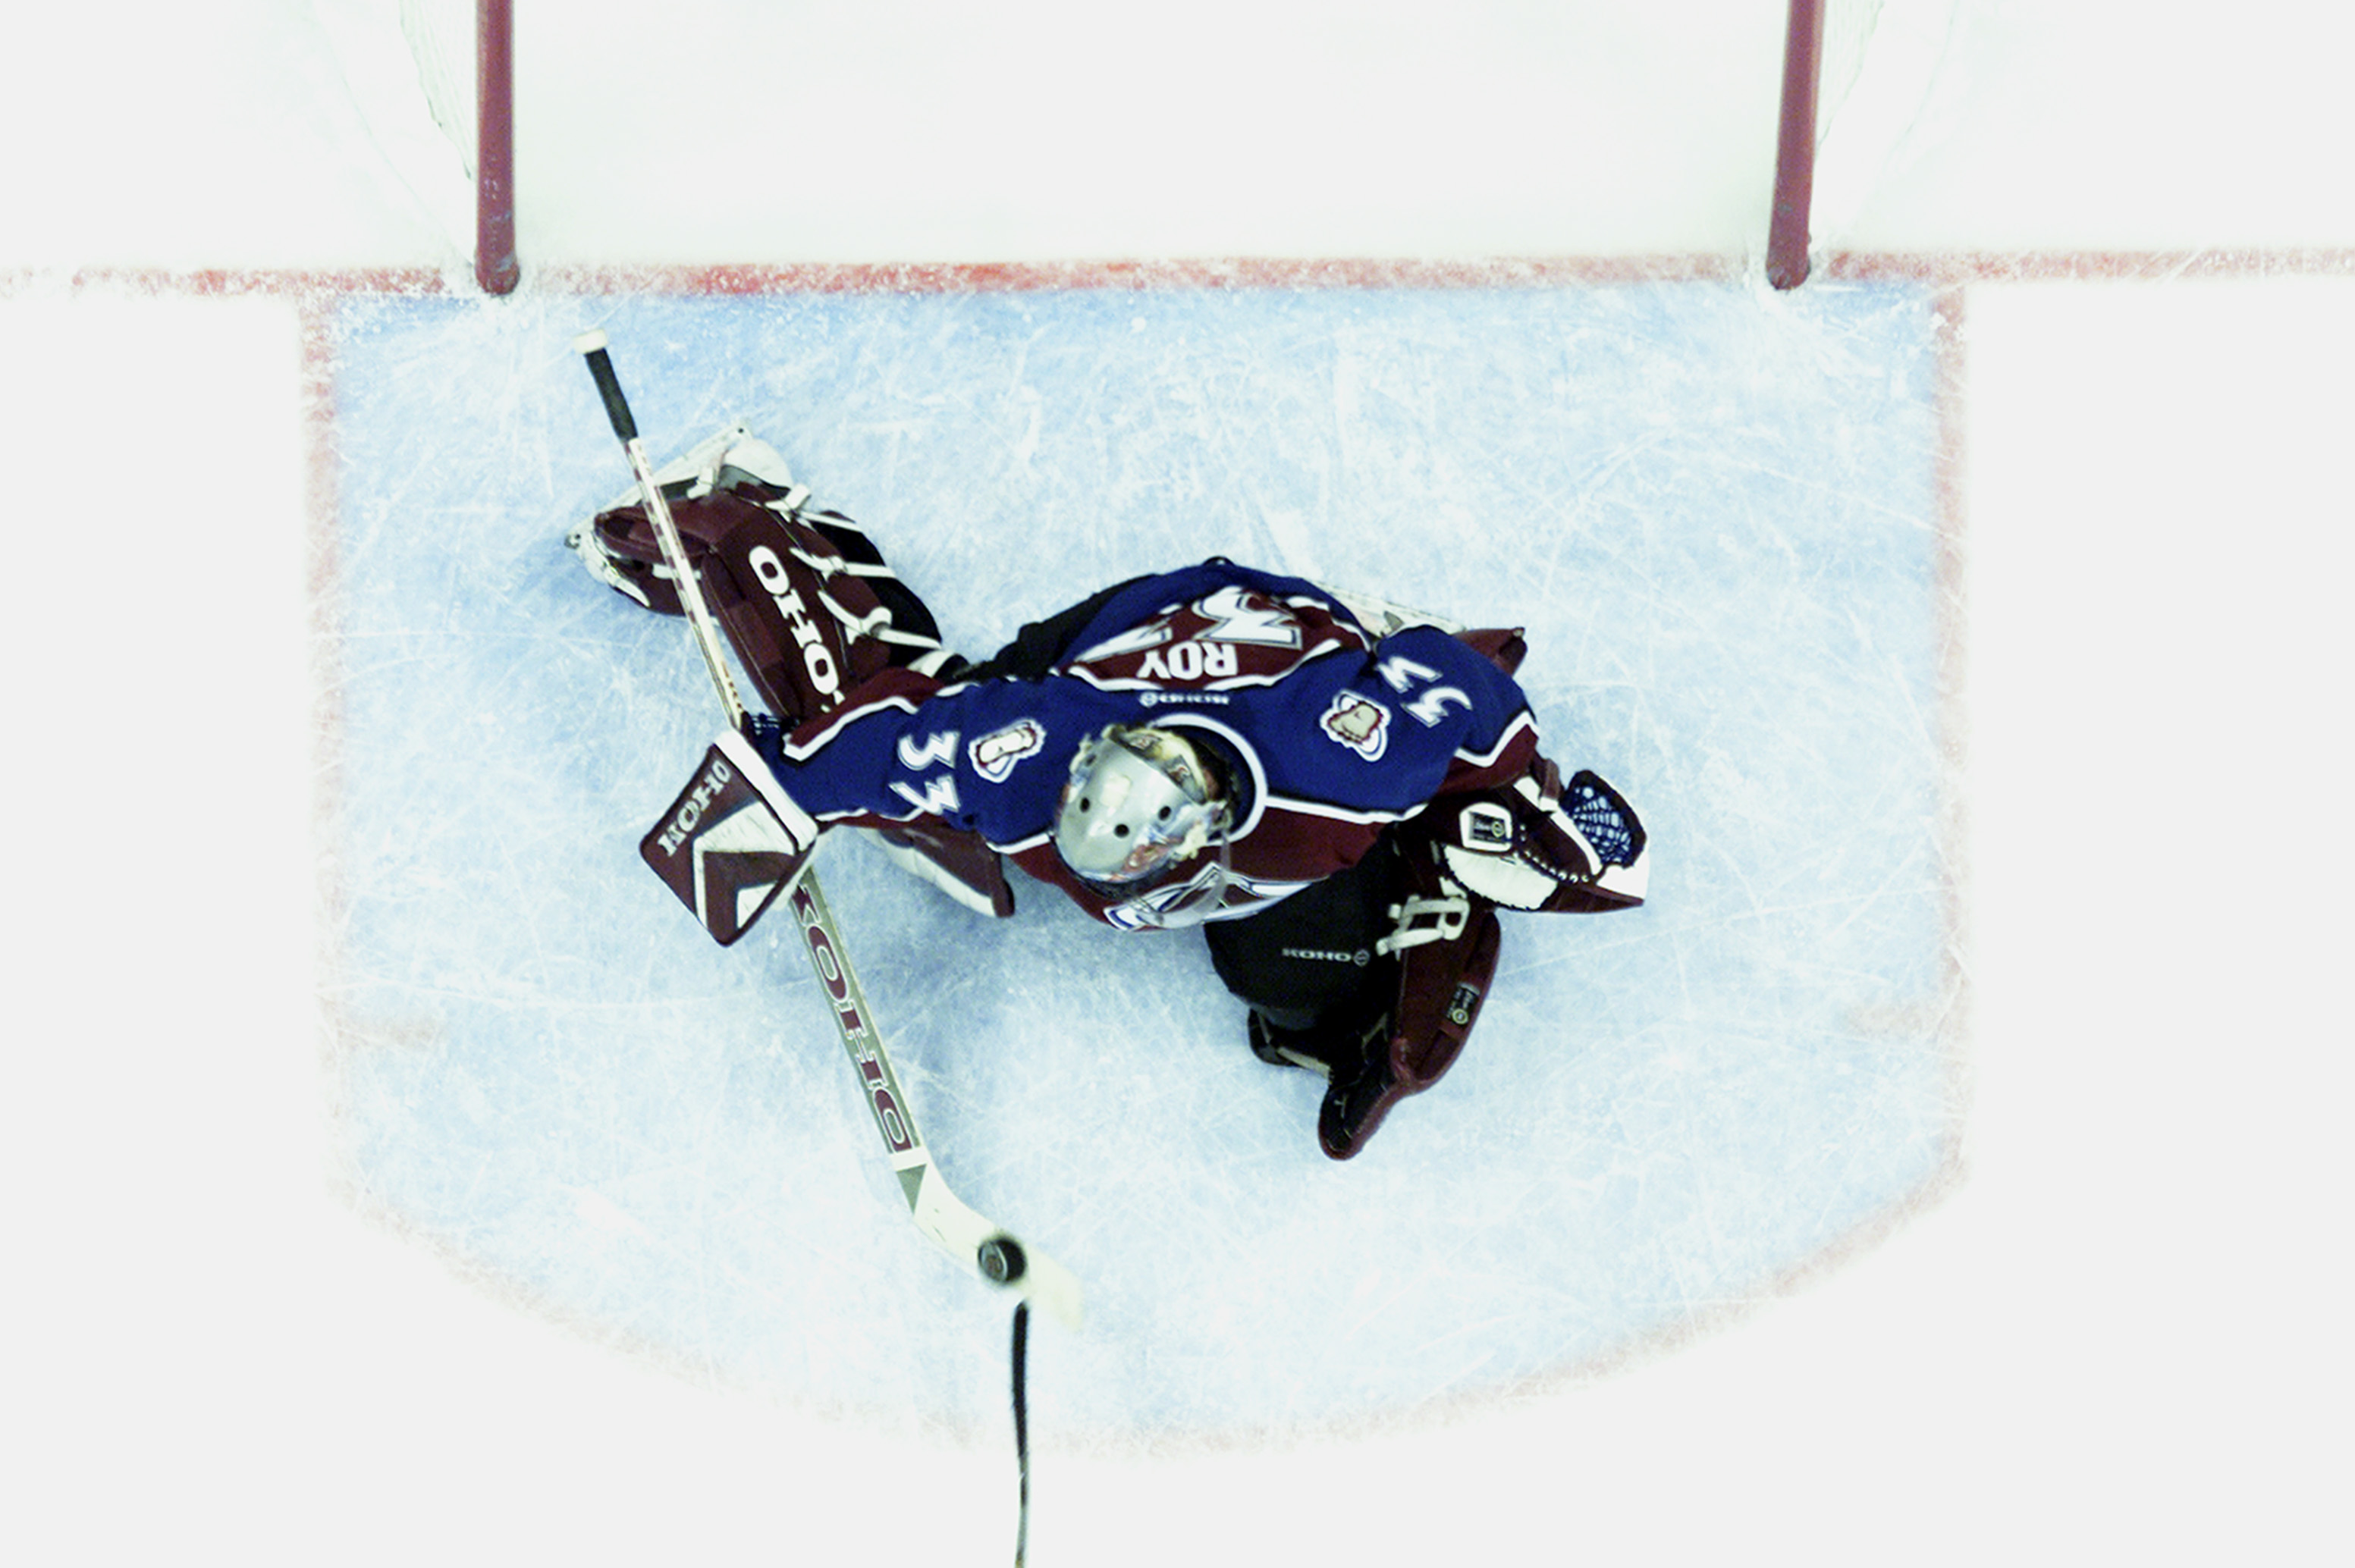 ST. PAUL, MN - APRIL 21:  Goalie Patrick Roy #33 of the Colorado Avalanche can't stop a goal by Marian Gaborik #10 of the Minnesota Wild in game six of the first round of the 2003 Western Conference Stanley Cup playoffs on April 21, 2003 at the Xcel Cente